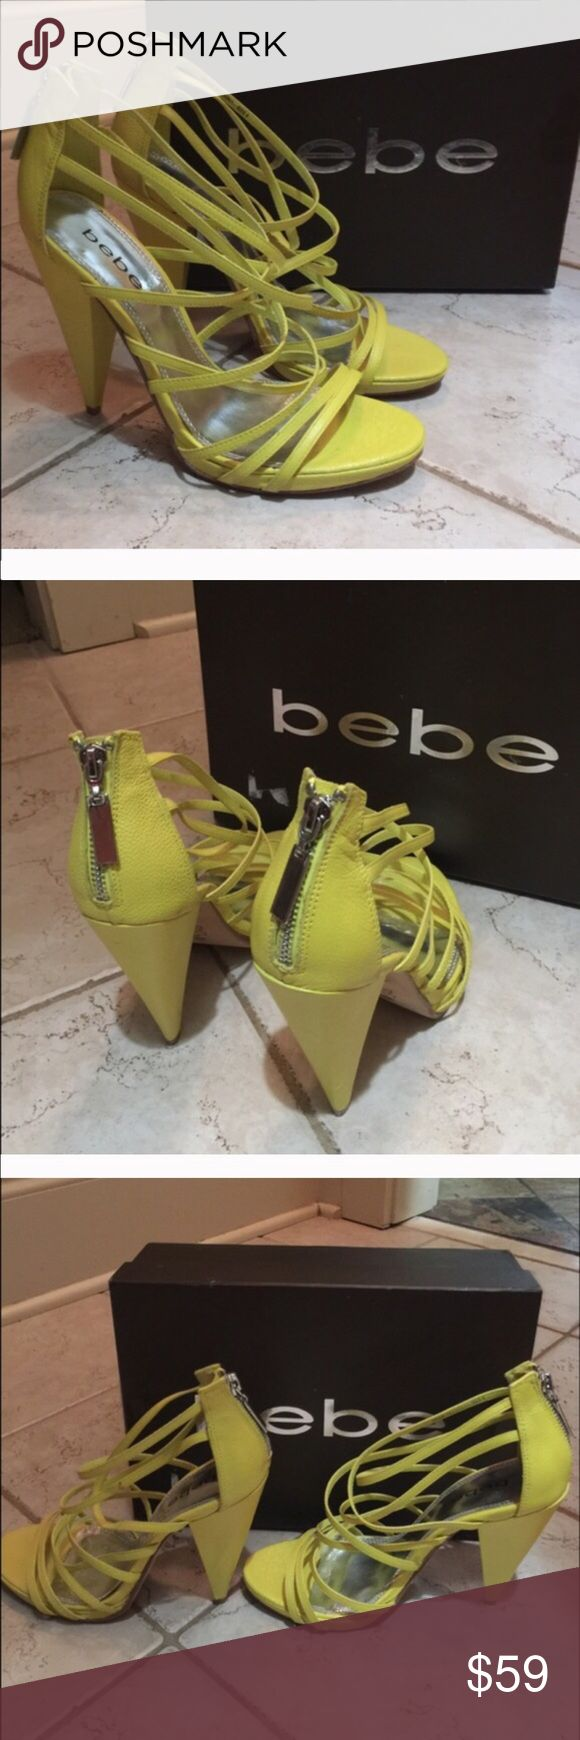 """BEBE STRAPPY LEATHER SANDALS HEELS YELLOW JUST REDUCED! Bebe amazing multi-strap heels pumps sandal. Angled, cone heel. 5"""" heels. Zips up the back. Metallic cushioned insole; leather sole. Excellent condition with only wear being on bottom. Comes with original box showing price $139. Style is called Maggie. I JUST REDUCED PRICE. Thanks for looking. bebe Shoes Sandals"""